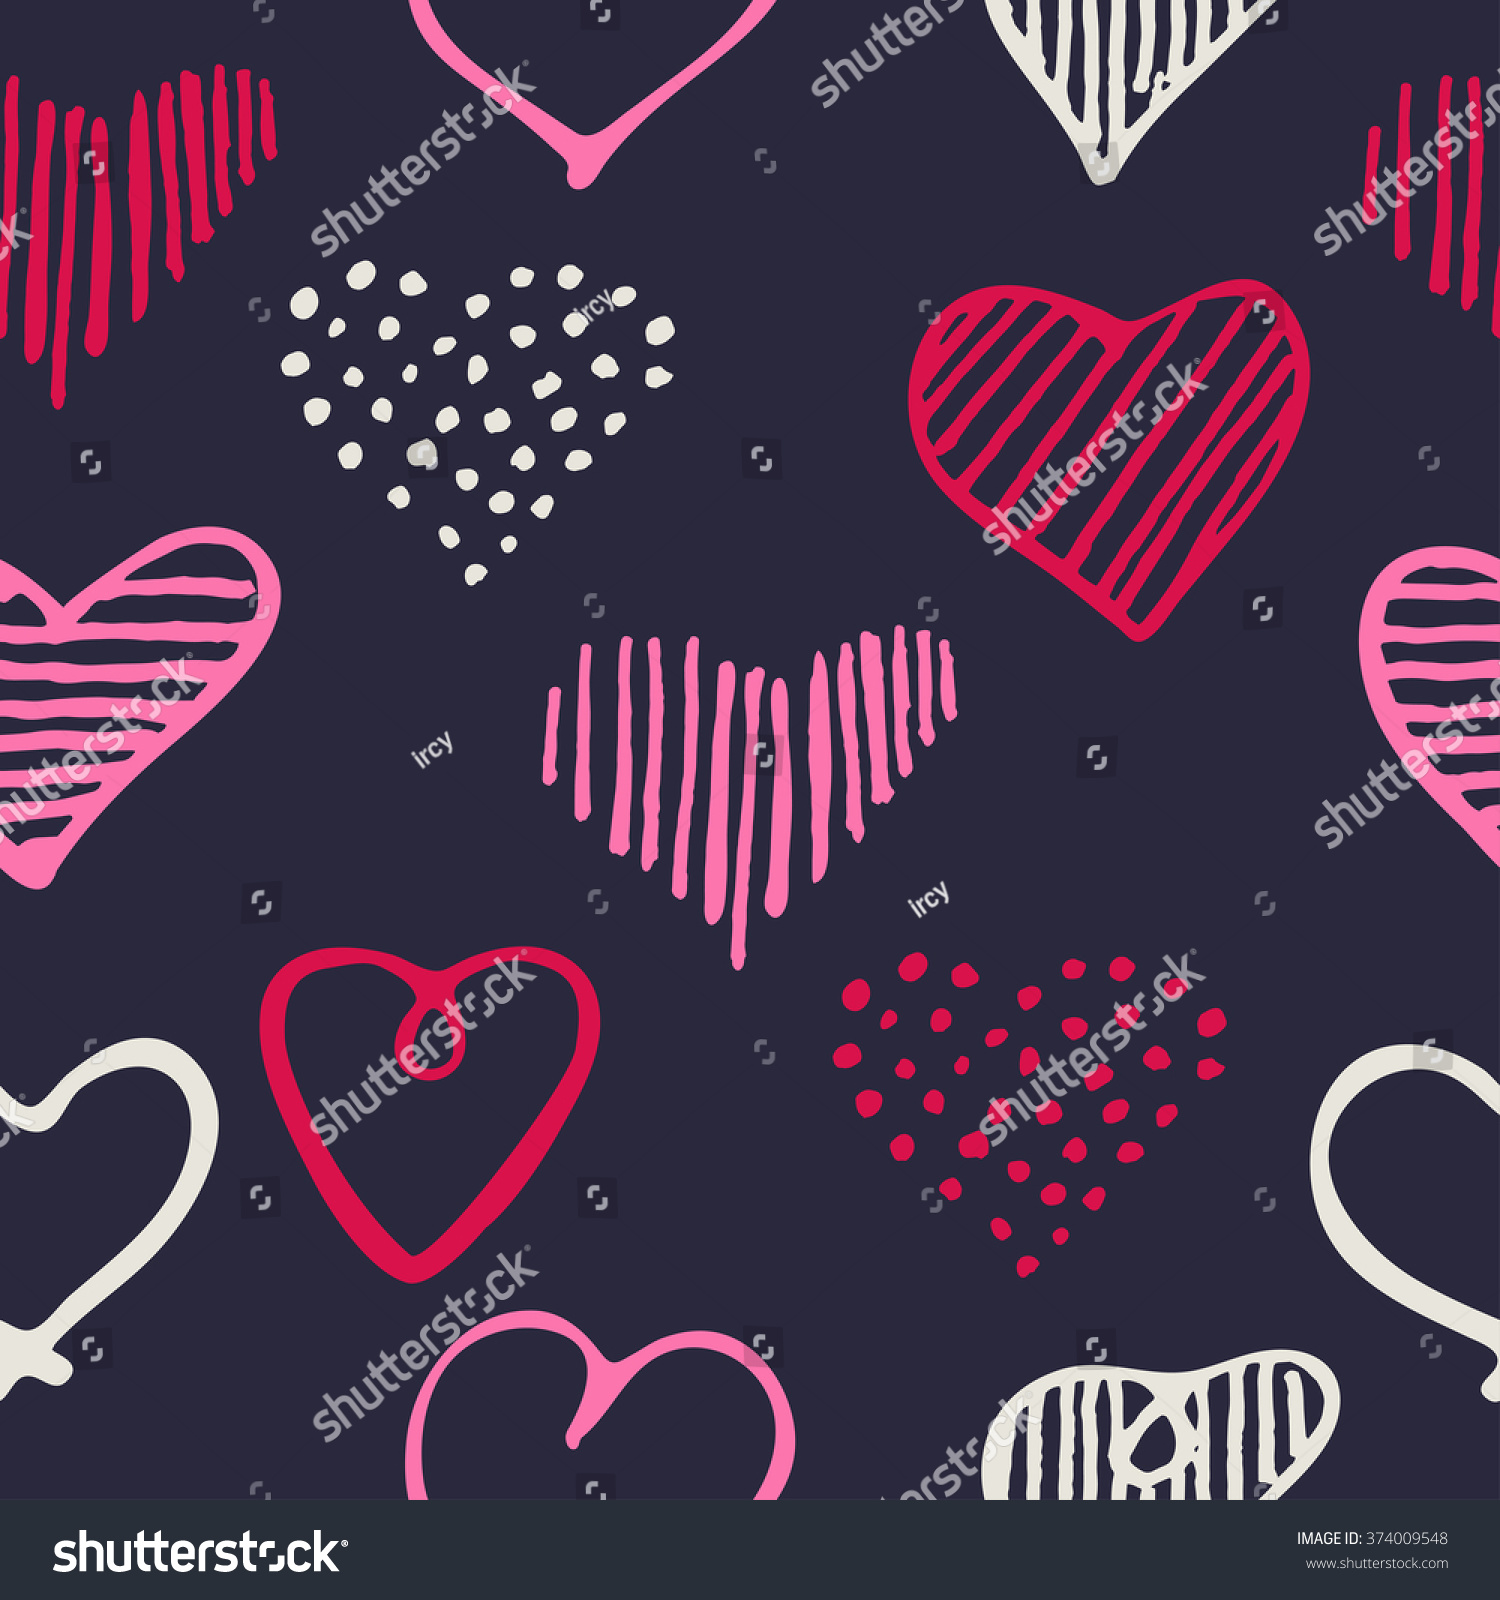 Cool Romantic Love: Love Seamless Pattern Romantic Doodle Hearts Stock Vector